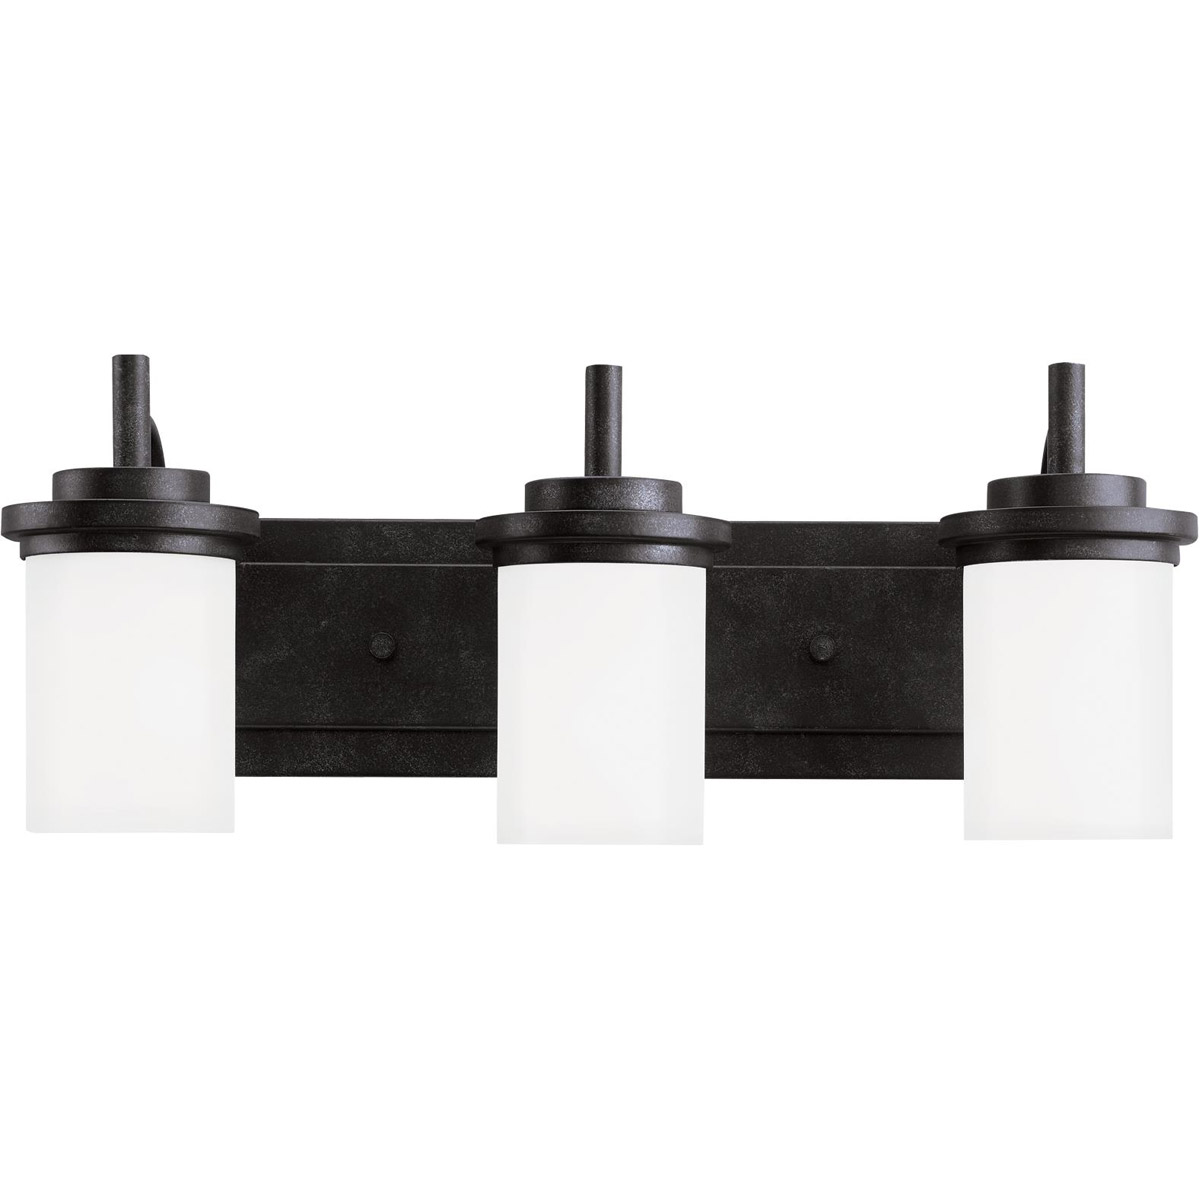 Sea Gull Lighting Winnetka 3 Light Bath Vanity in Blacksmith 44662-839